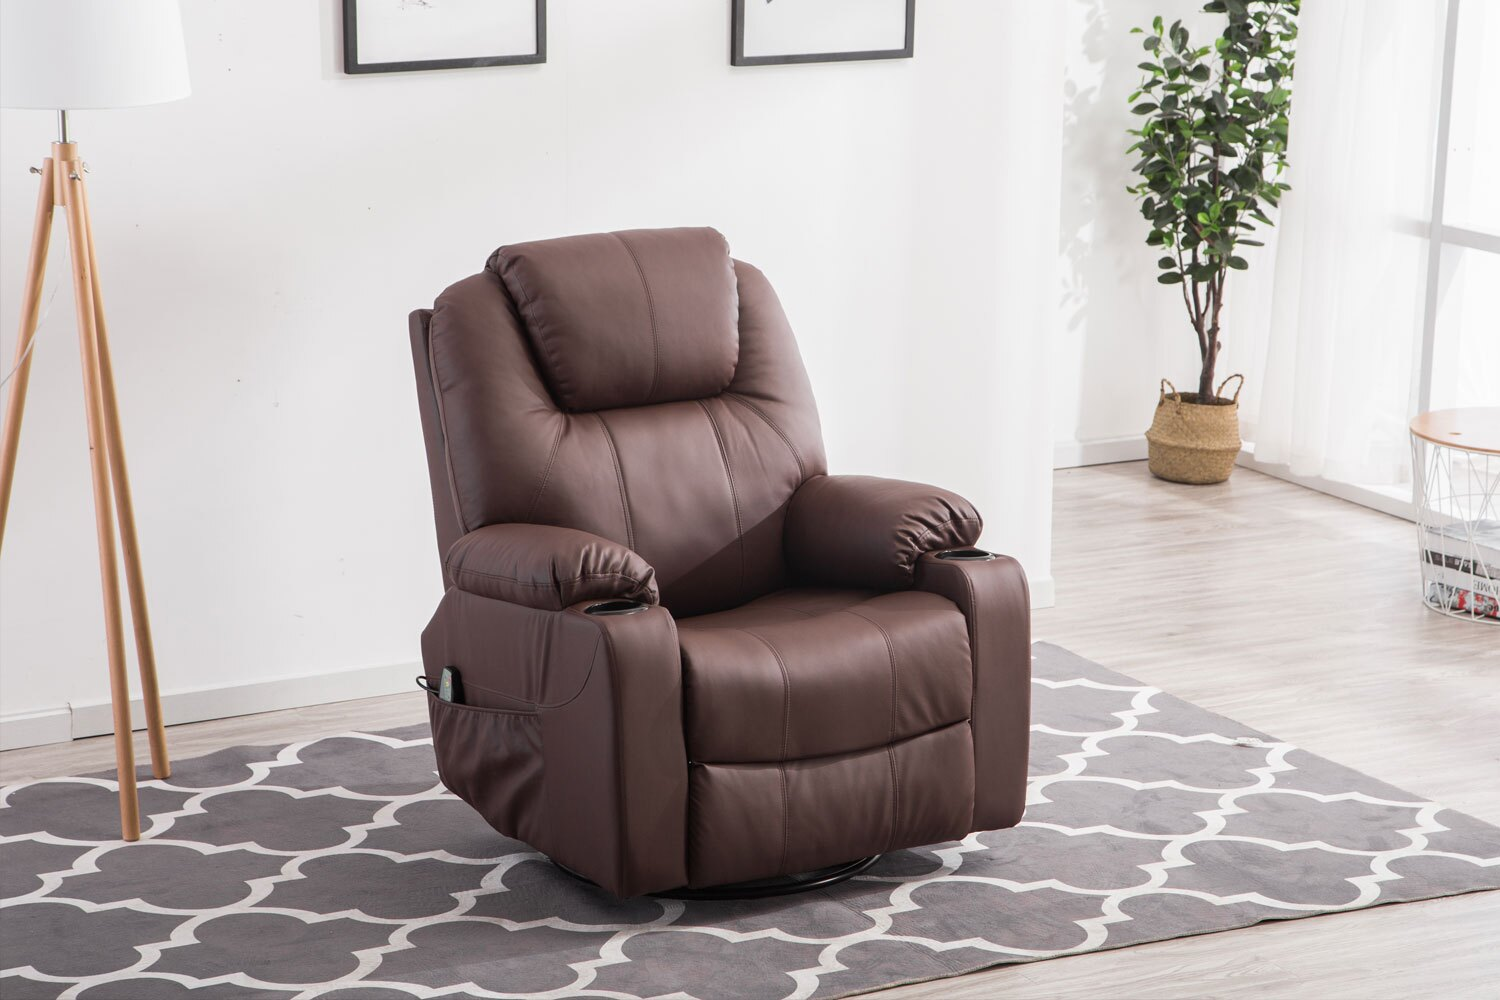 top home leather chair premium free red overstock today garden product carnegie grain shipping crimson recliner